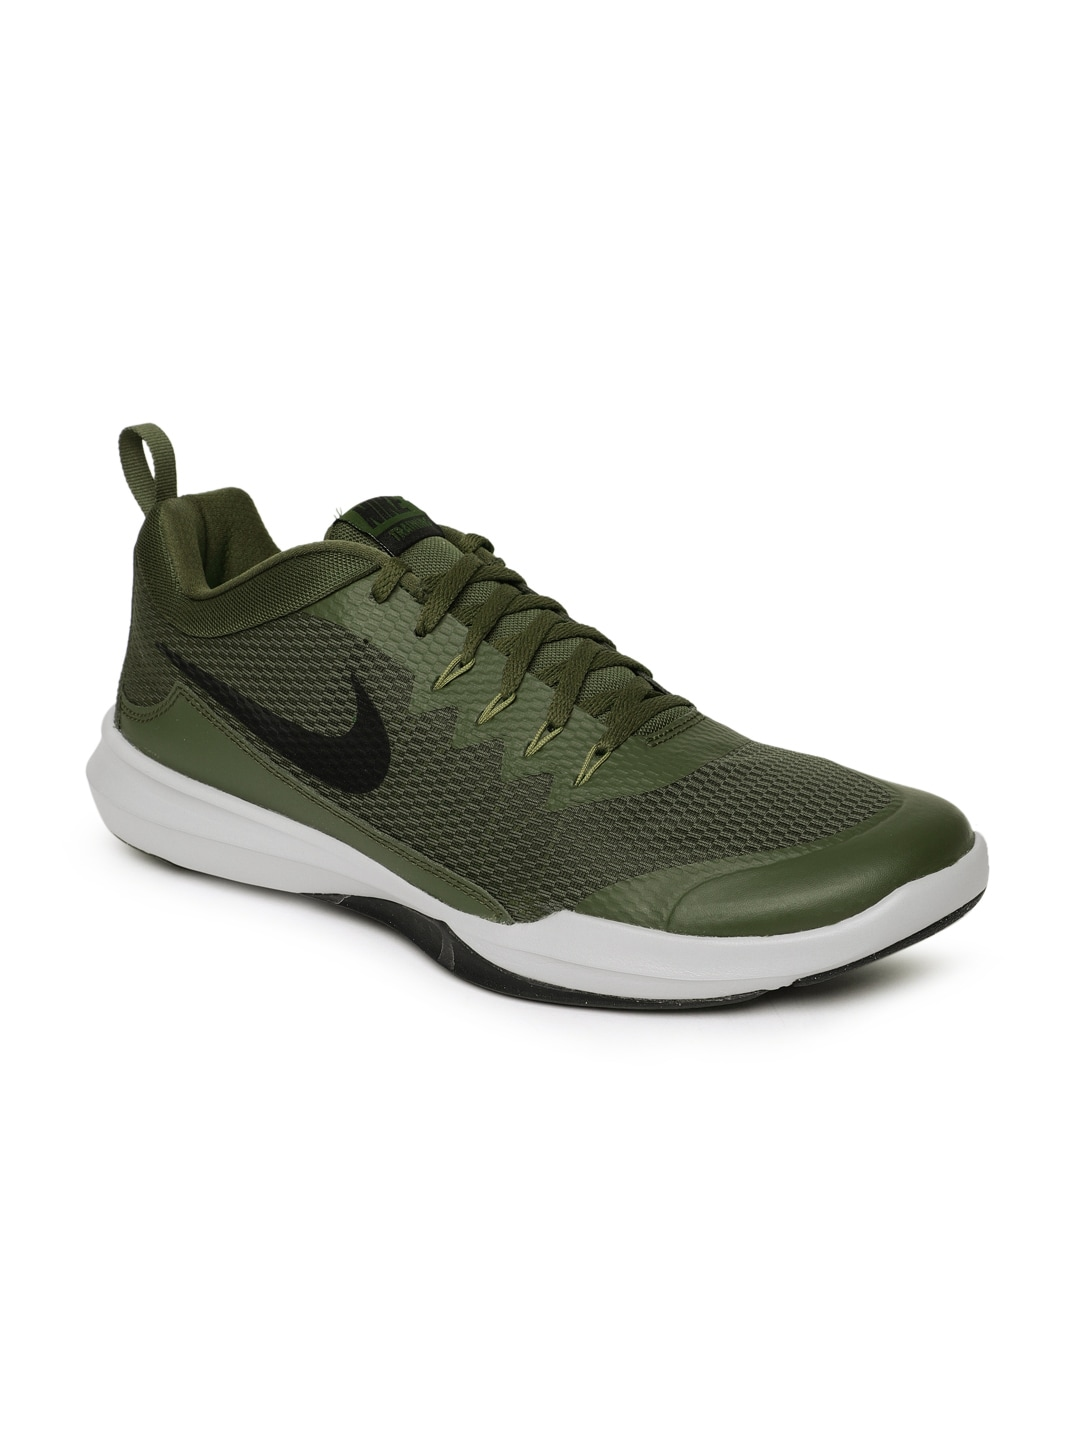 timeless design 63fa4 351b8 Nike Shoes - Buy Nike Shoes for Men, Women   Kids Online   Myntra